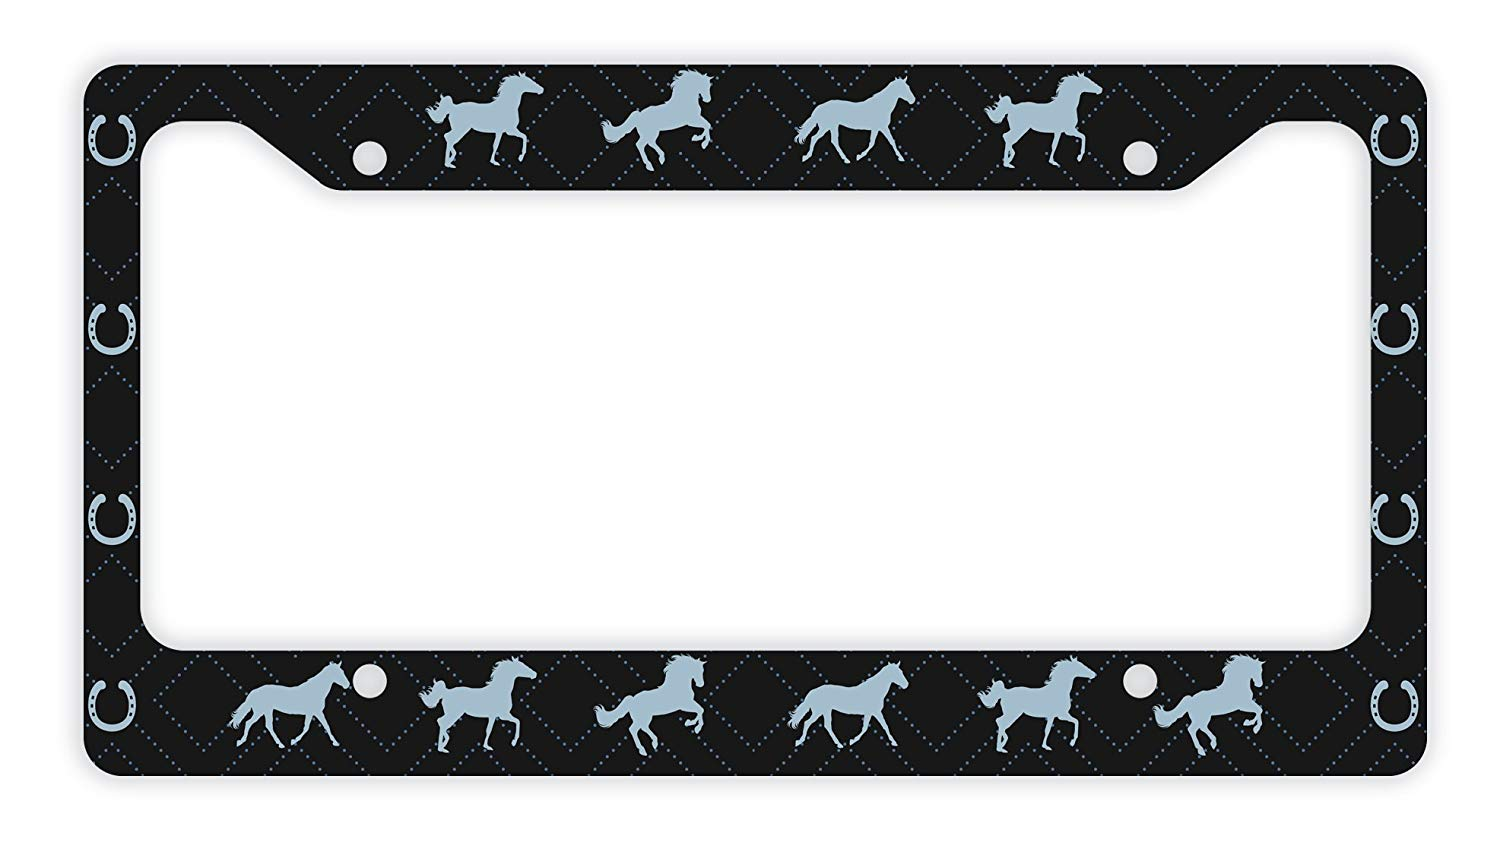 ThisWear Decorative License Plate Frame Horse License Plate Frame Horse  Trailer License Plate Frame Horse Car Accessories Novelty License Plate  Frame.